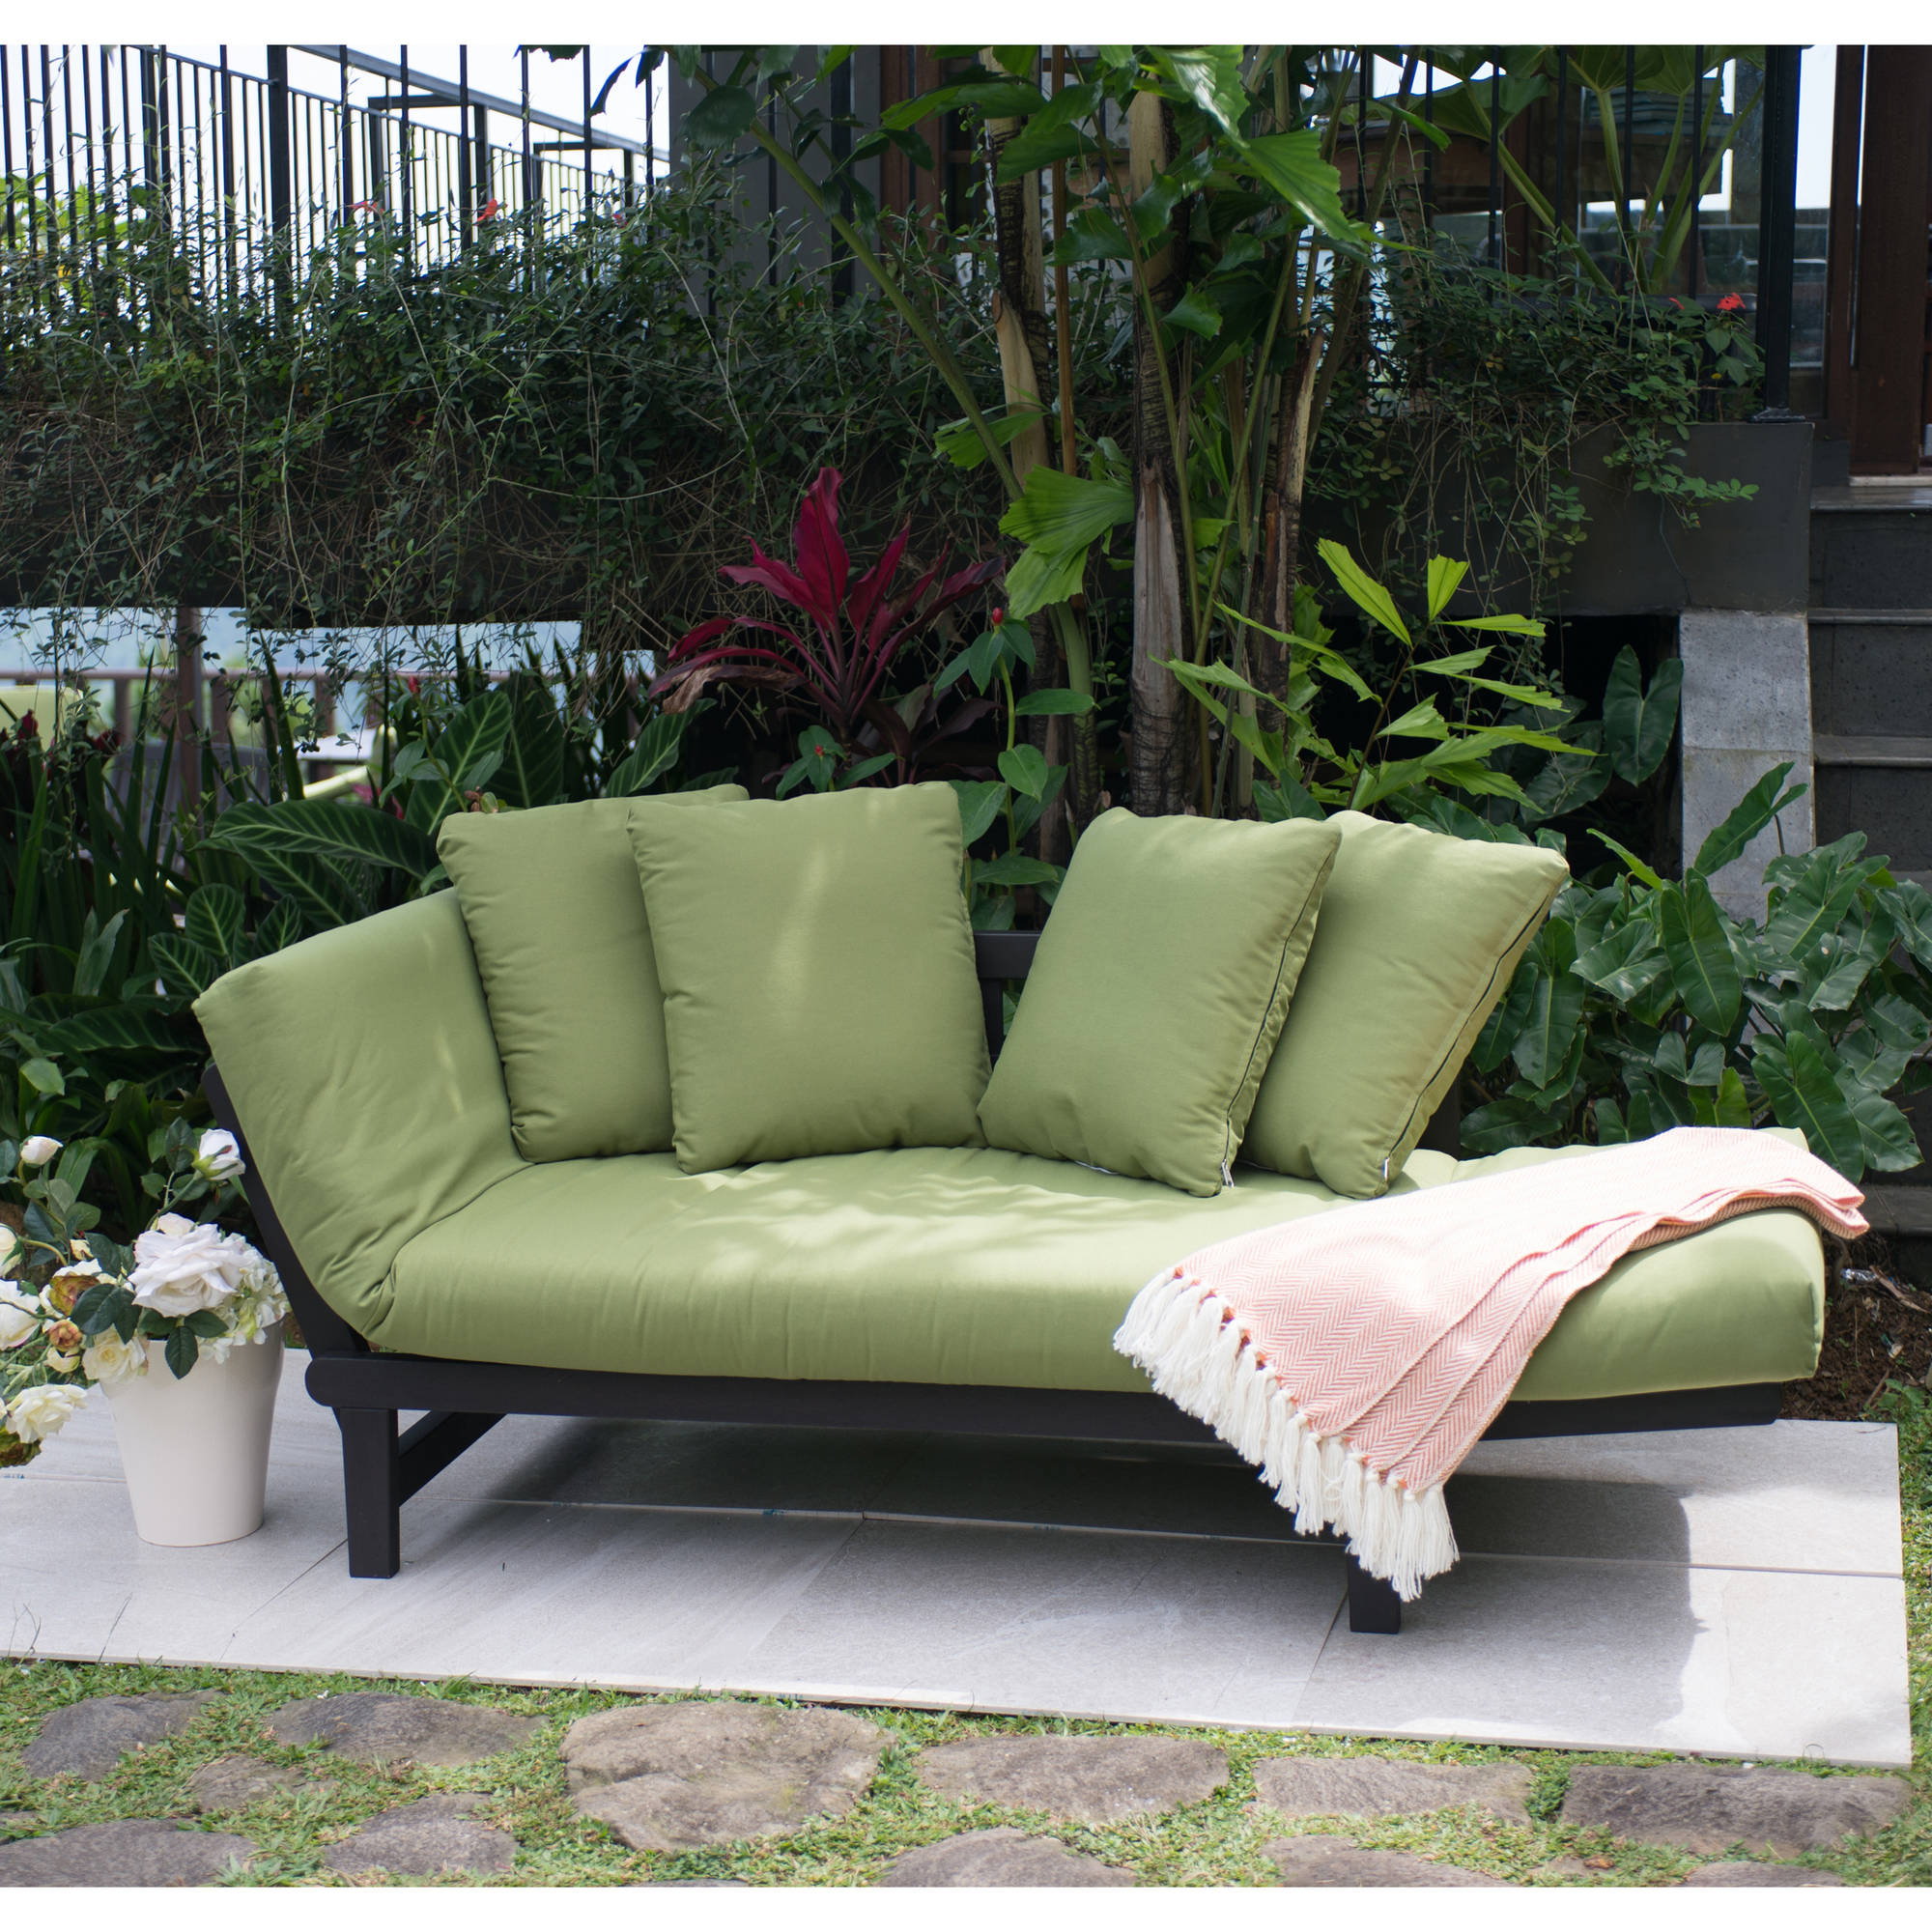 Sofa Cushions That Don't Go Flat Better Homes Gardens Delahey Outdoor Daybed With Cushions Green